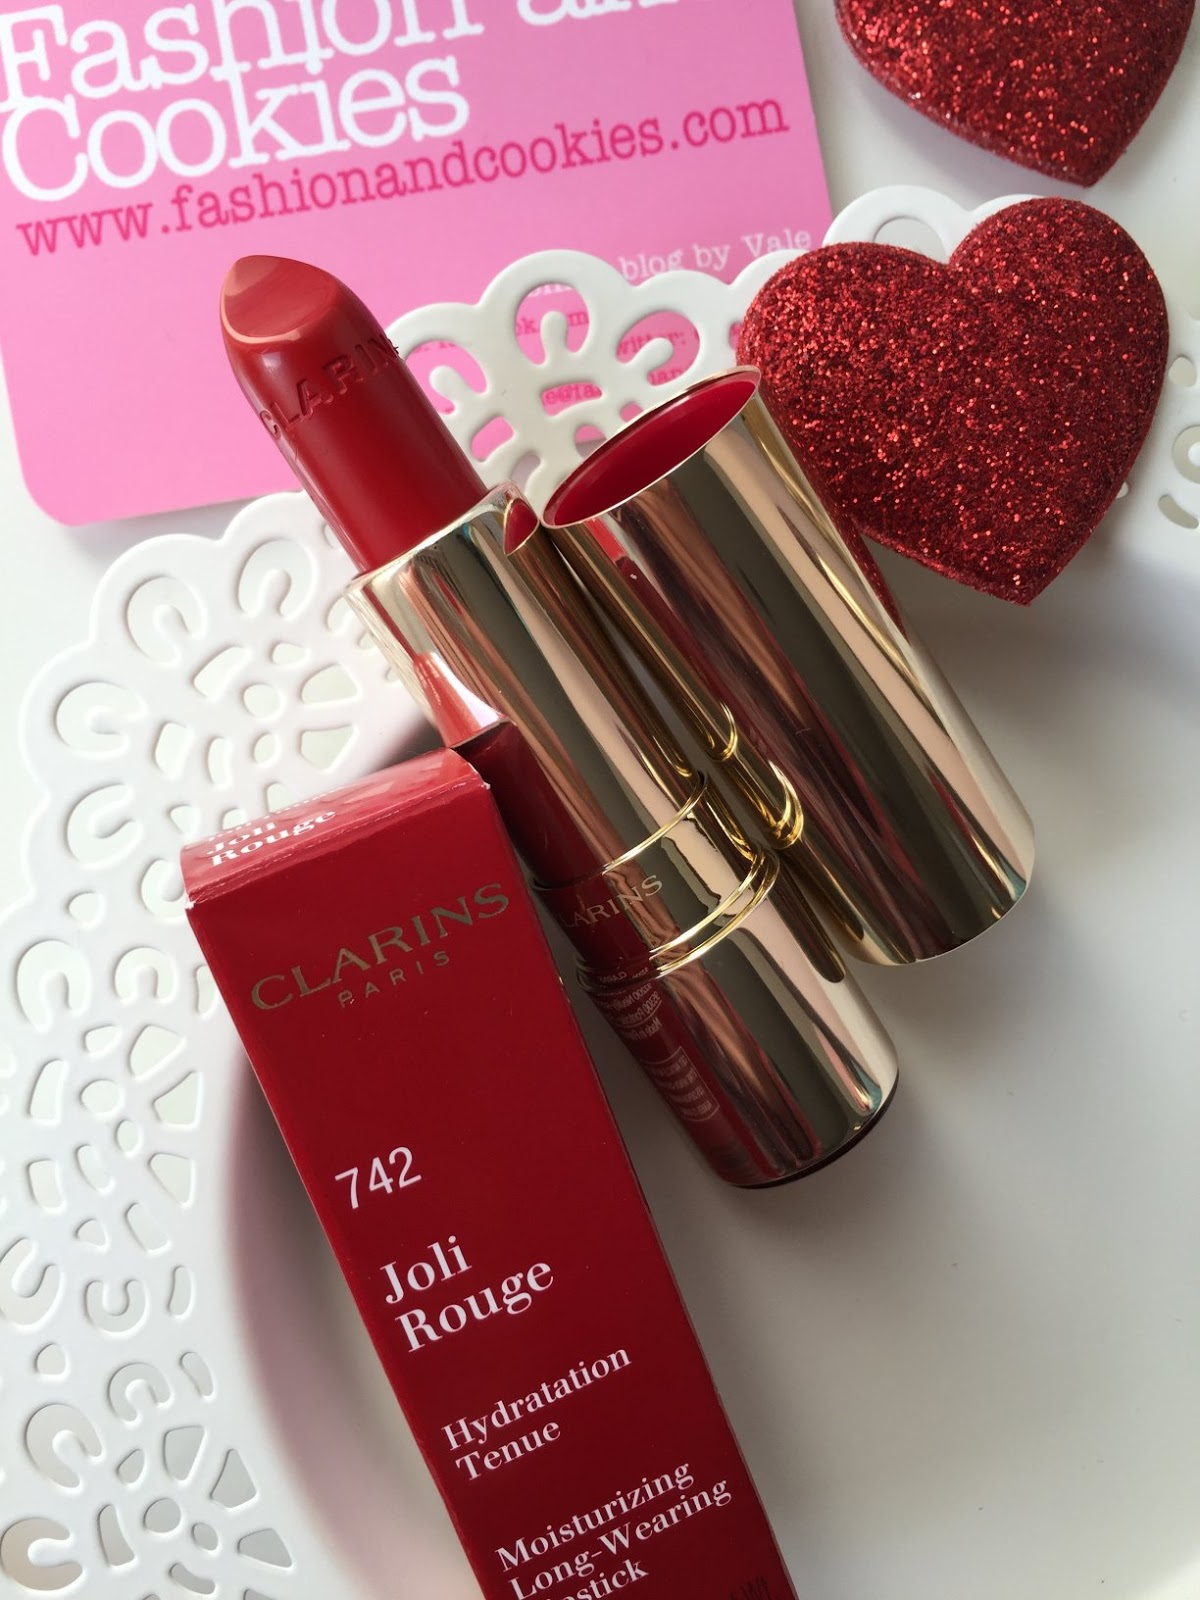 Clarins Joli Rouge lipstick joli rouge red n. 742 review on Fashion and Cookies beauty blog, beauty blogger from Italy